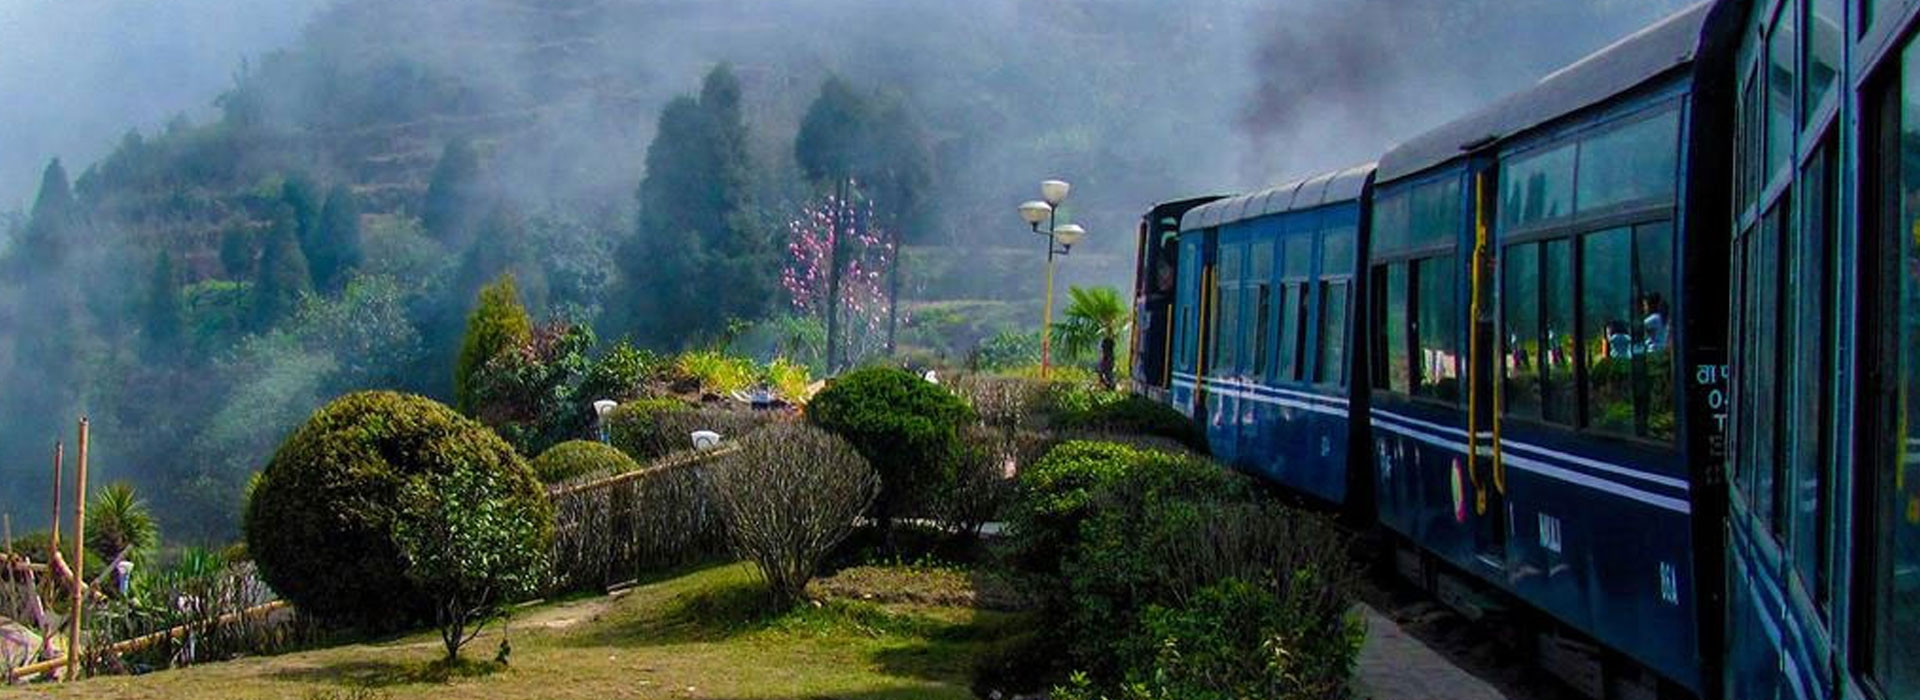 http://rareindia.com/upload/collections/train-tours.jpg